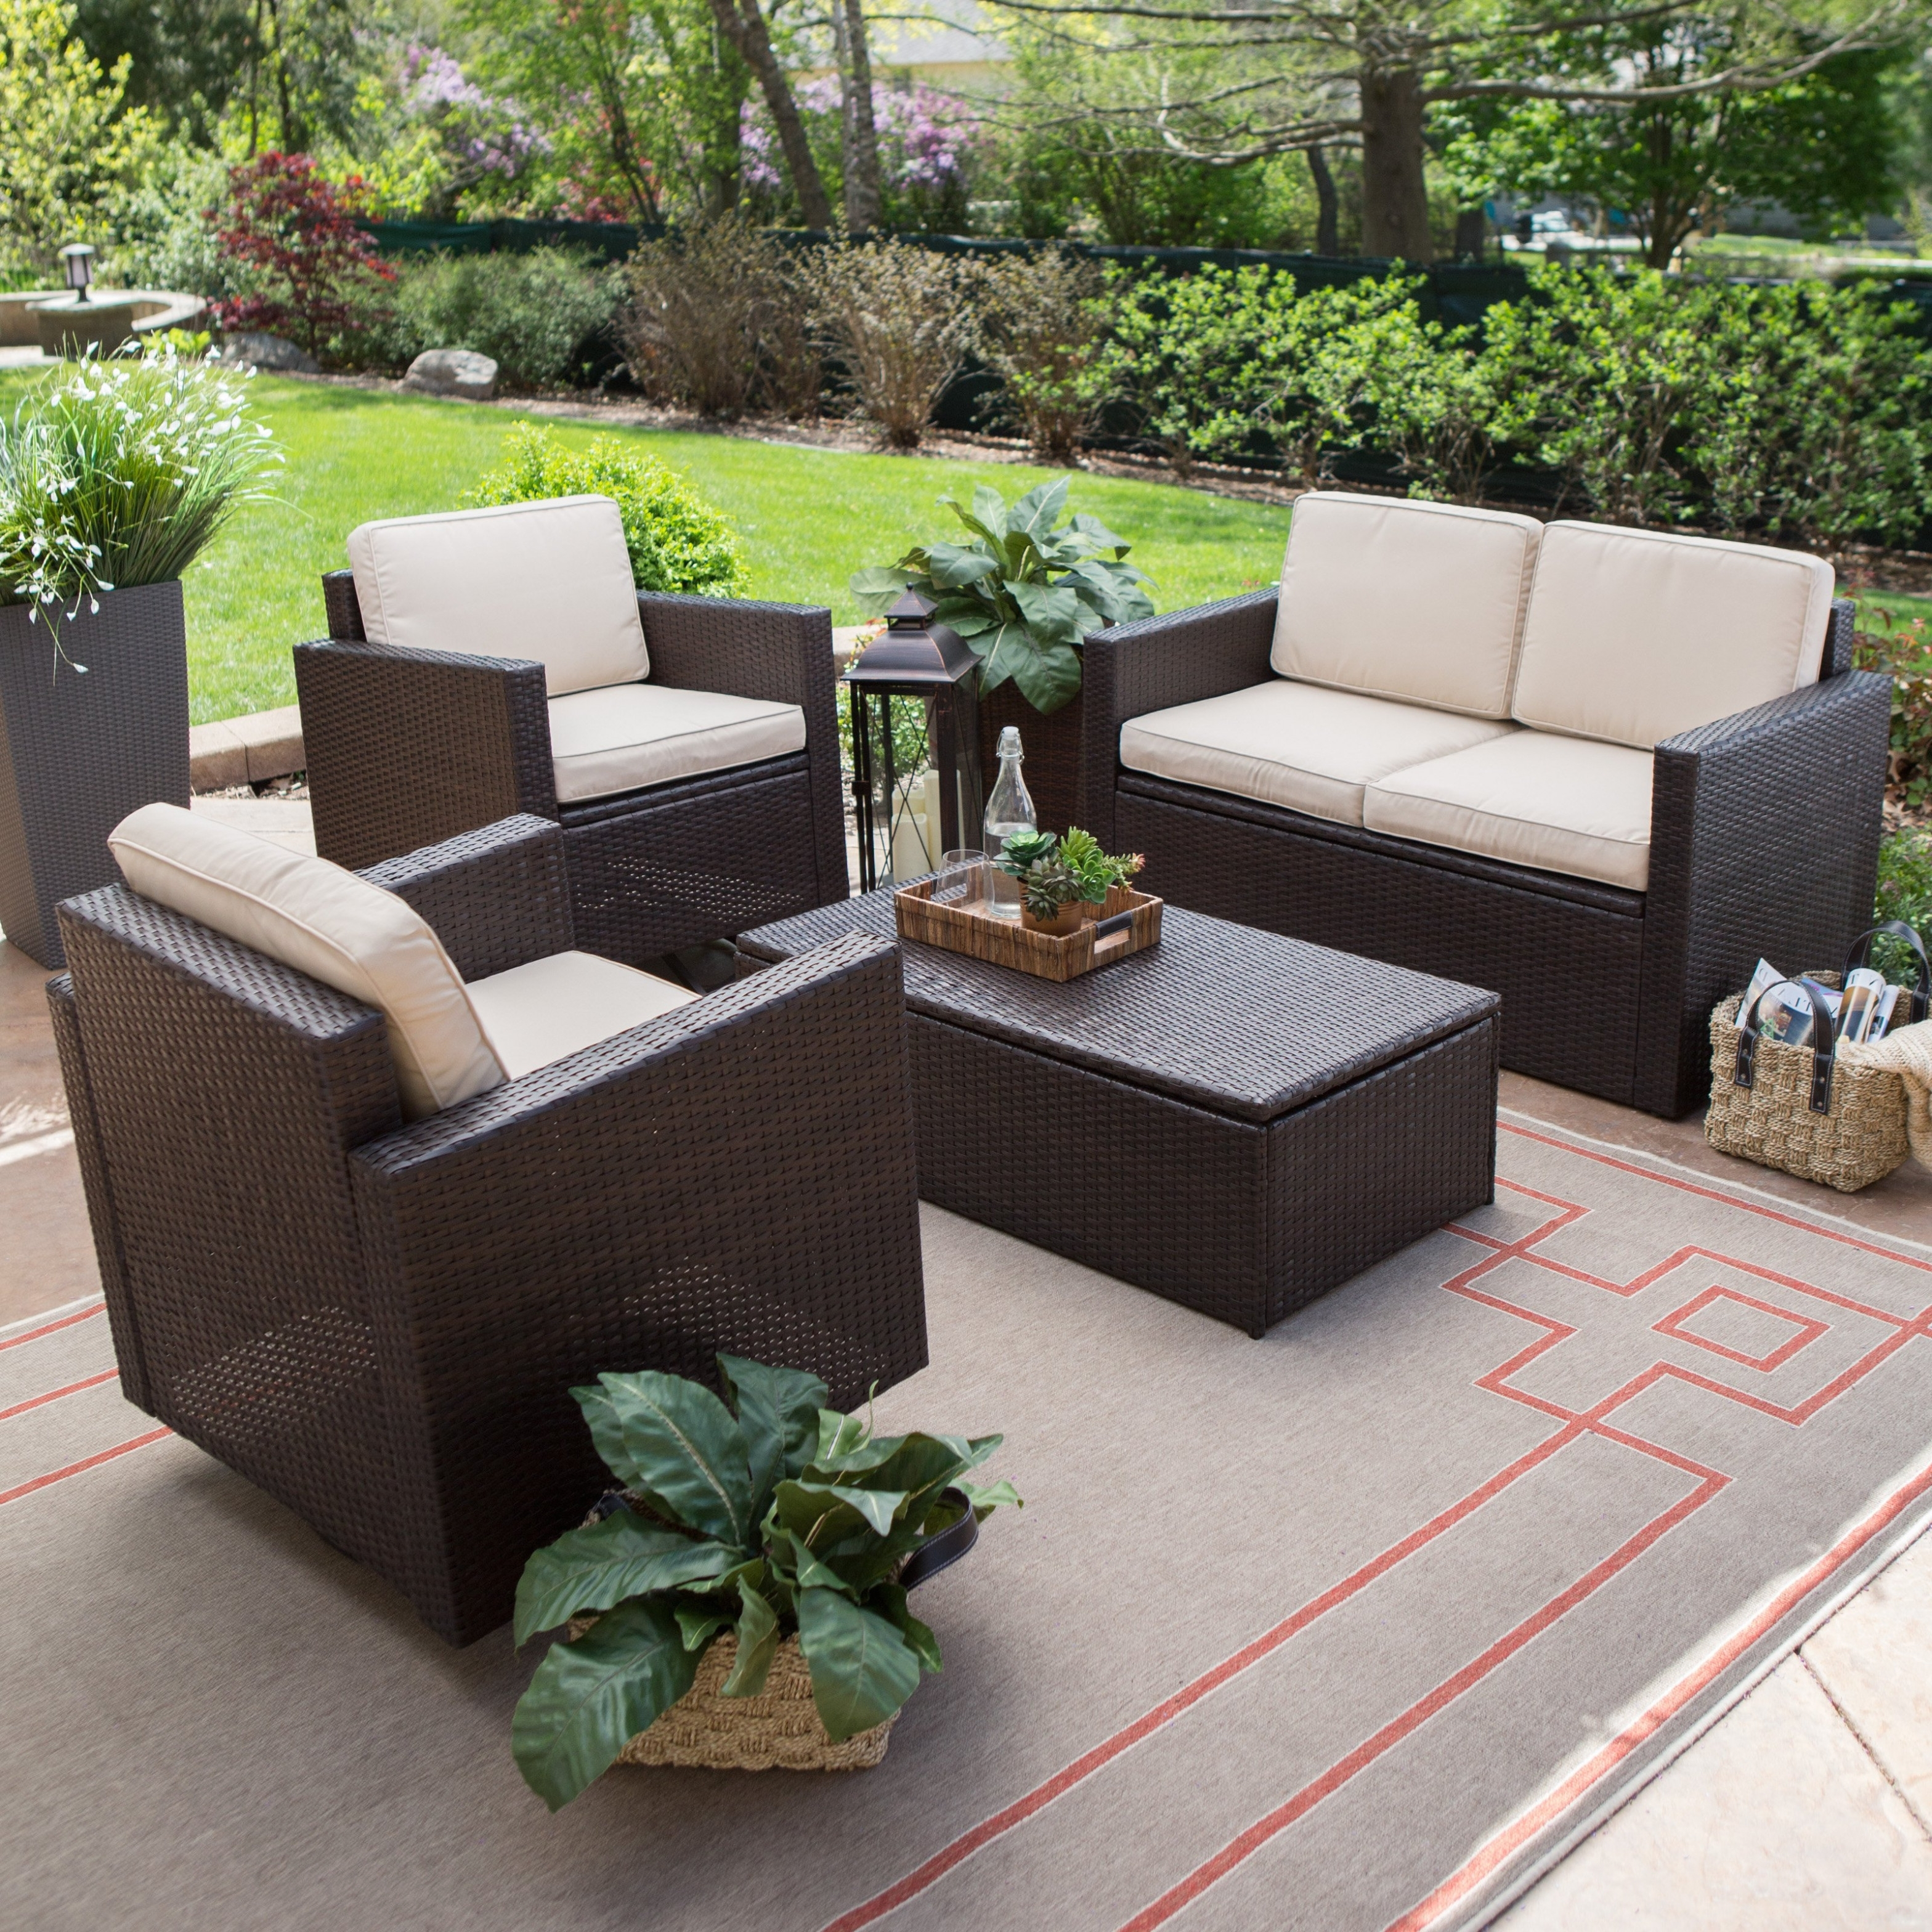 30 Luxury Small Sectional Patio Furniture Concept Intended For 2018 Small Patio Conversation Sets (Gallery 14 of 20)